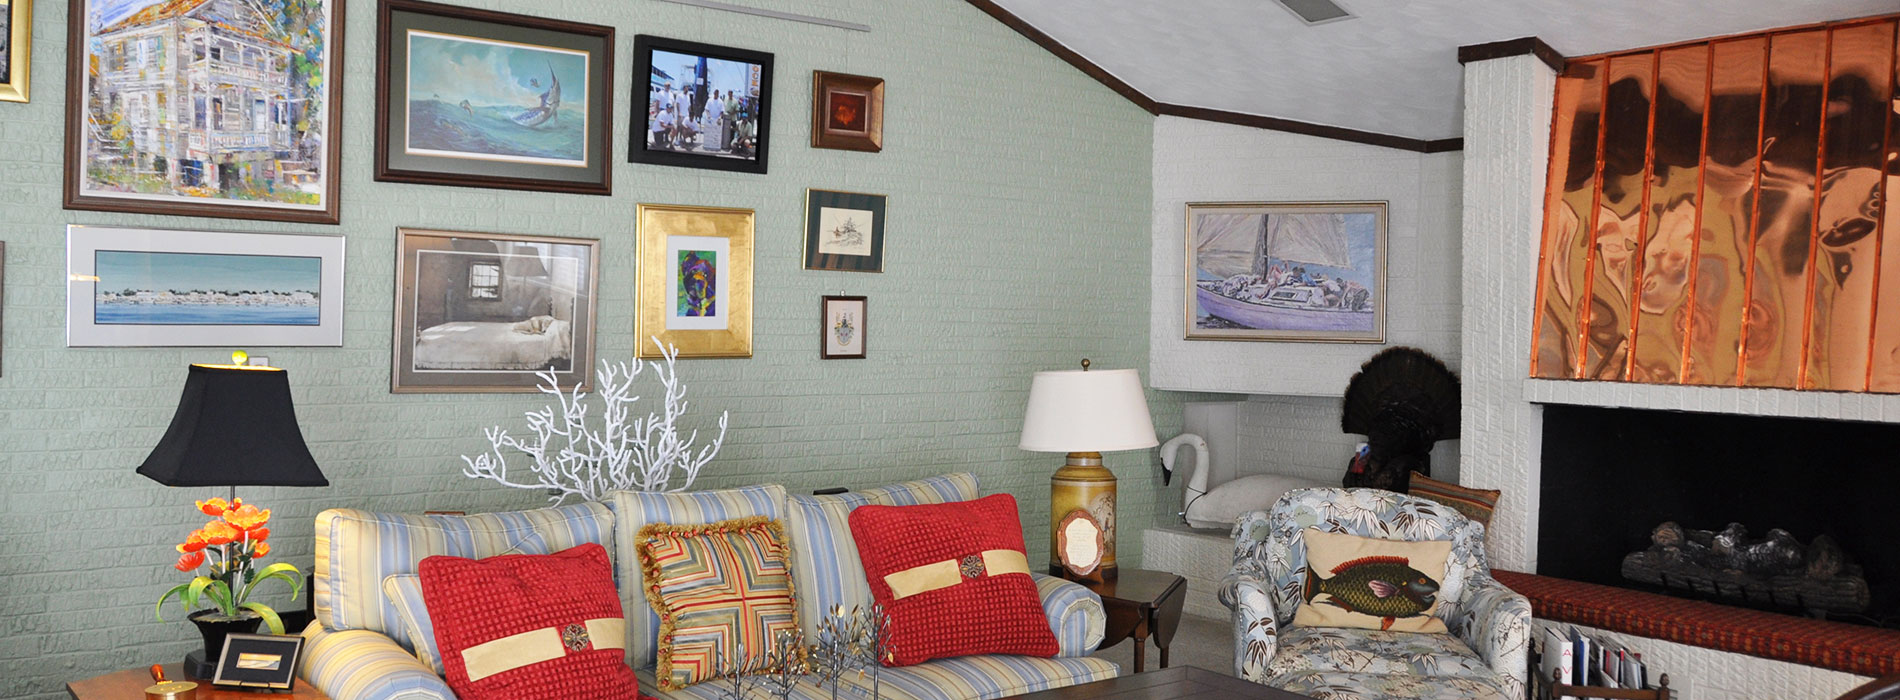 living room decorator tuscan style furniture rooms and design services in new bern nc